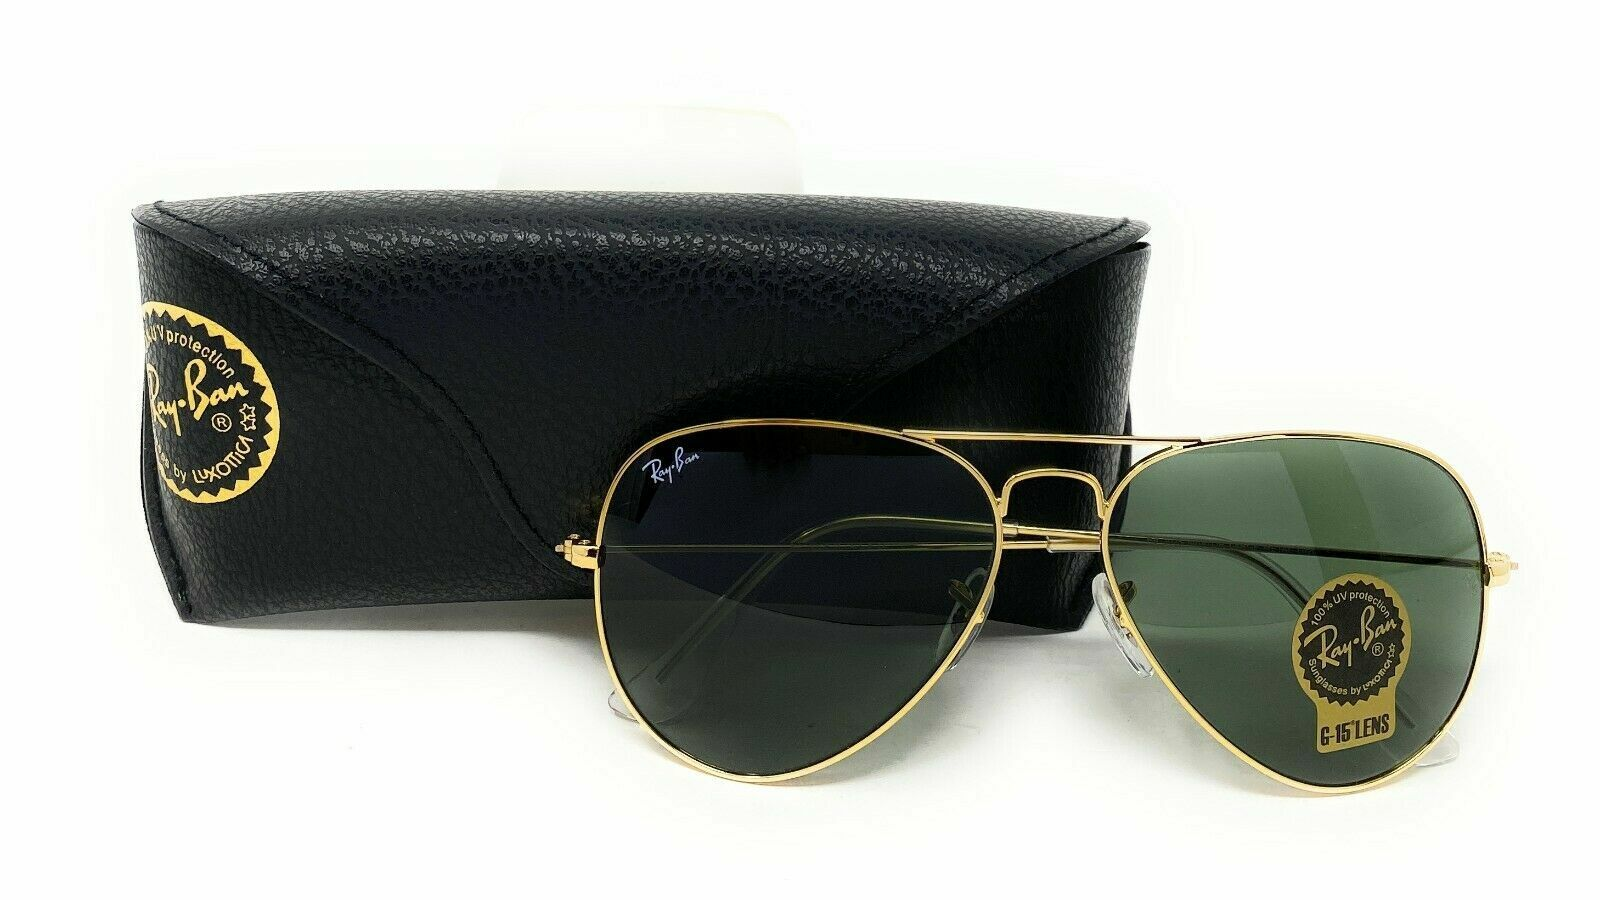 Ray Ban Sunglasses Unisex Aviator RB3025 L0205 Gold Frame Green 58mm Clothing, Shoes & Accessories